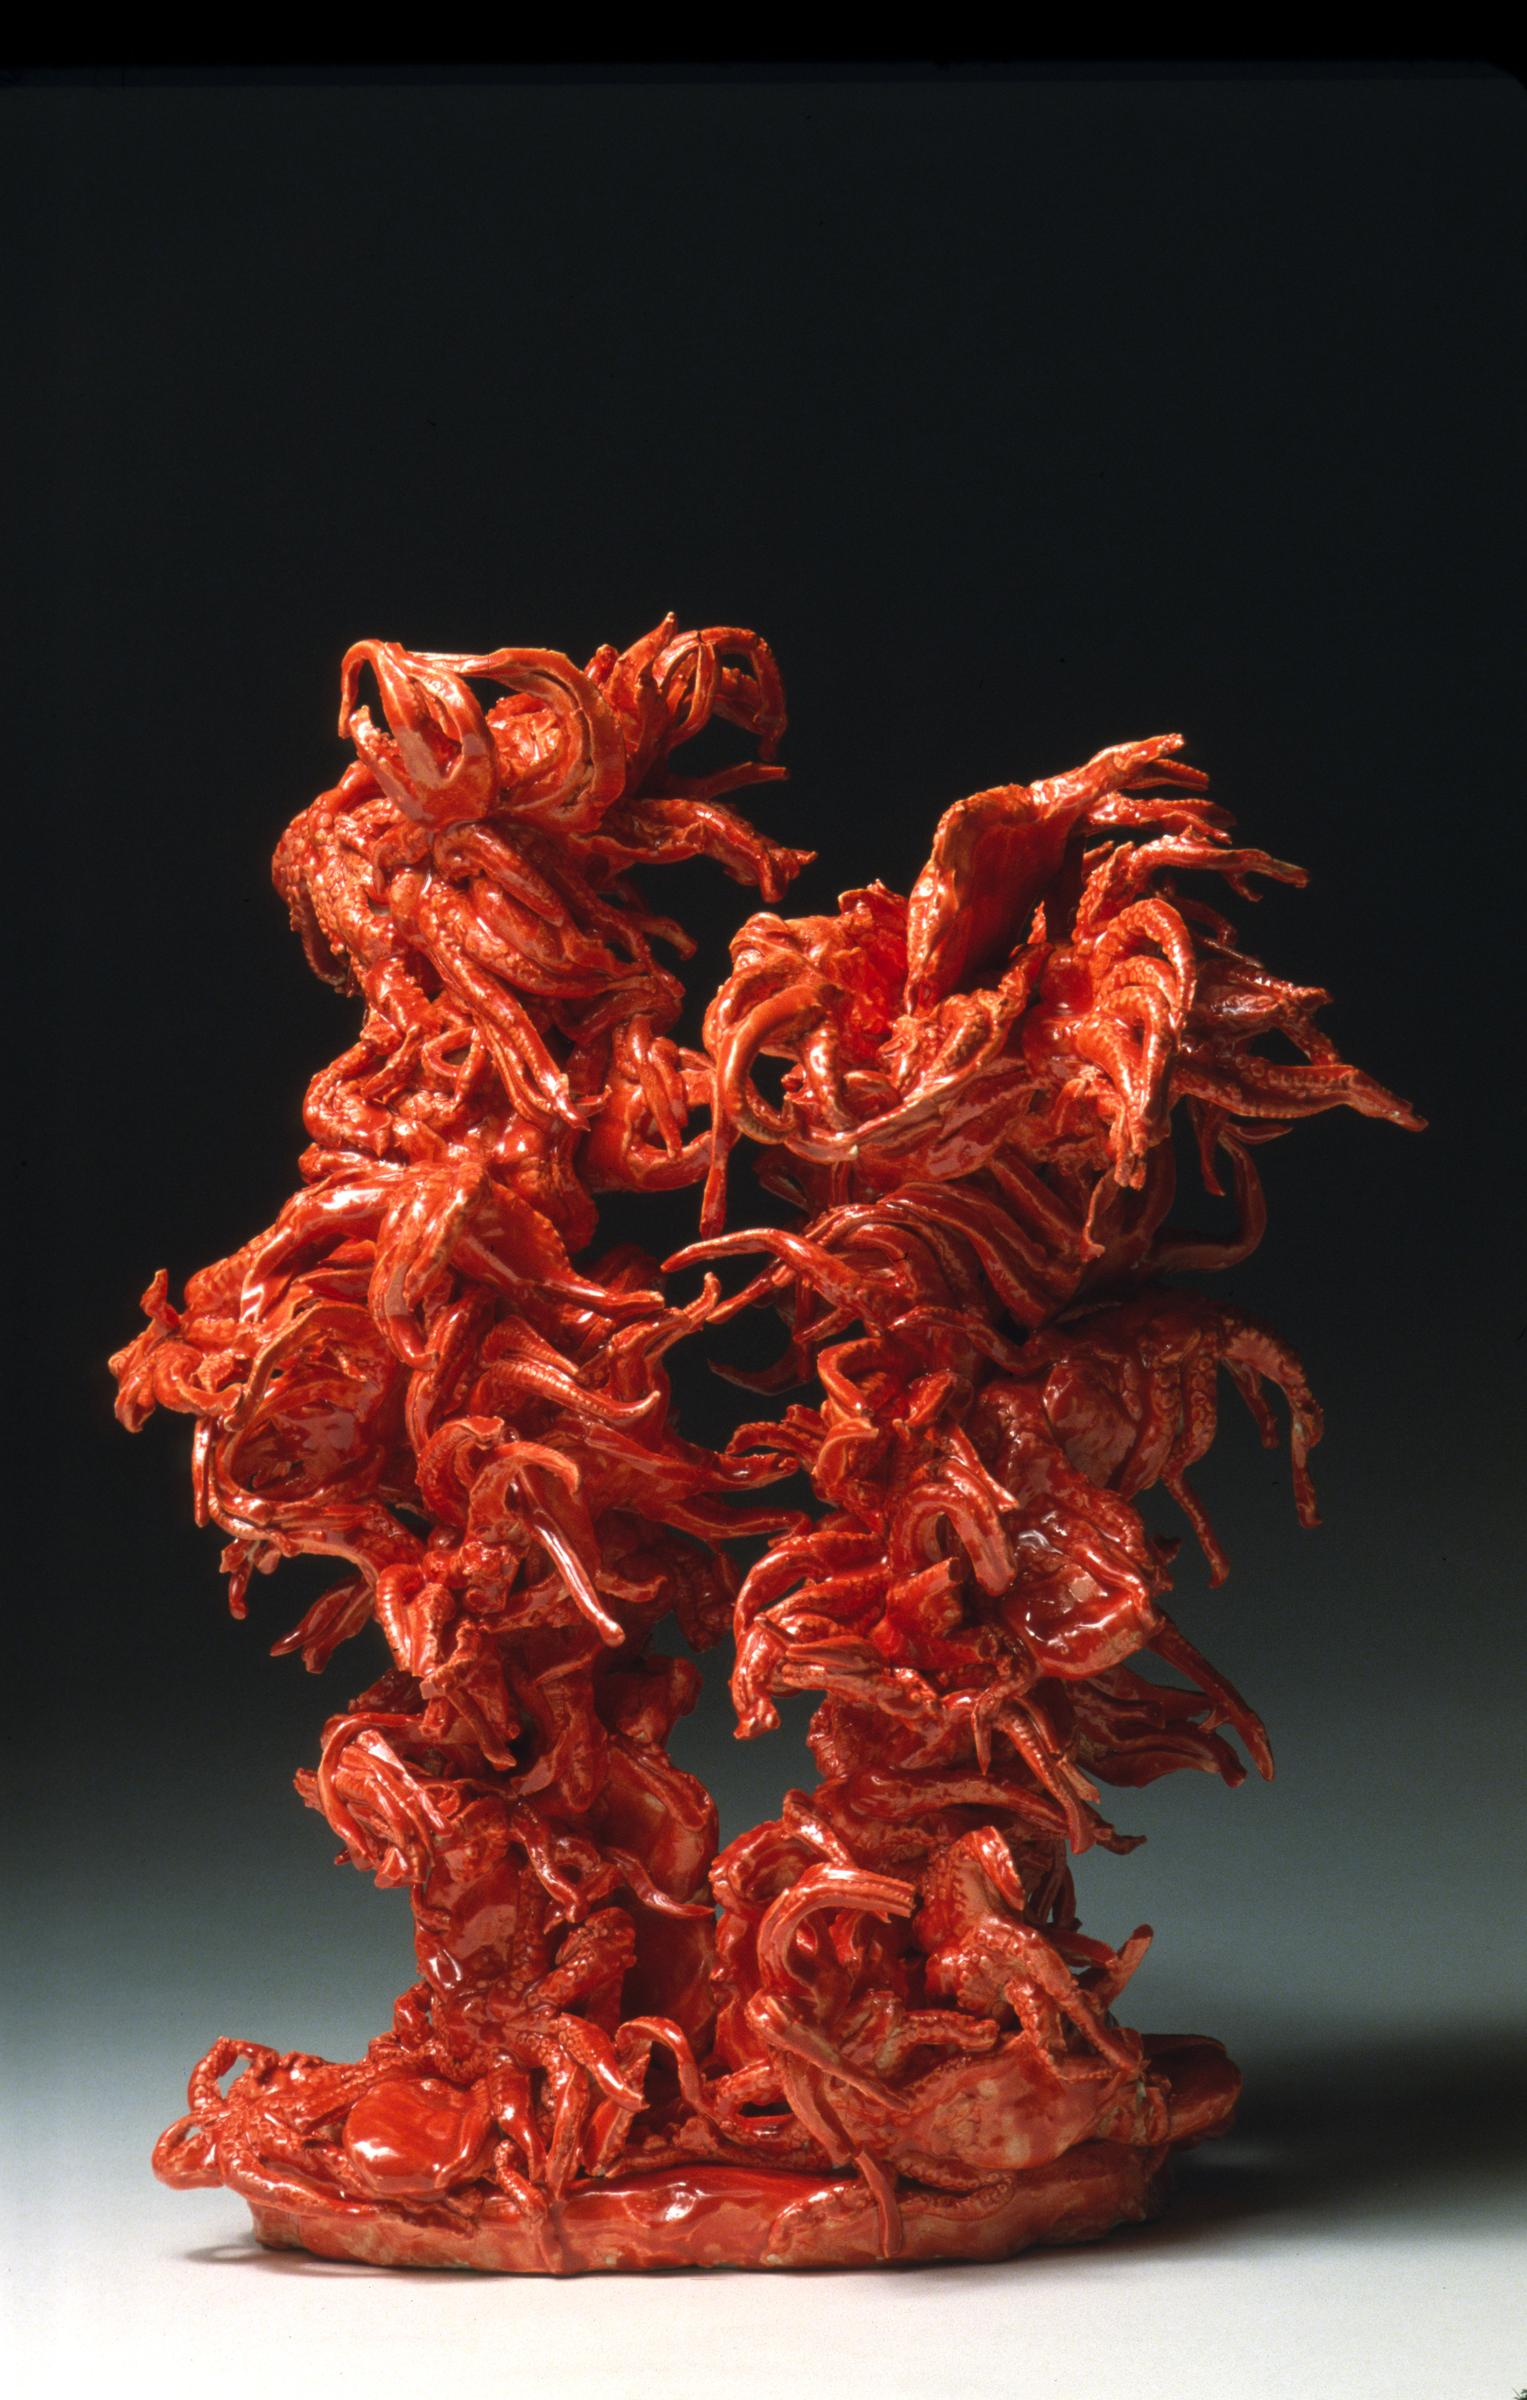 JULIA KUNIN Coral Forest, 2014, ceramic, 22 x 12 x 10 inches, SGI2610.